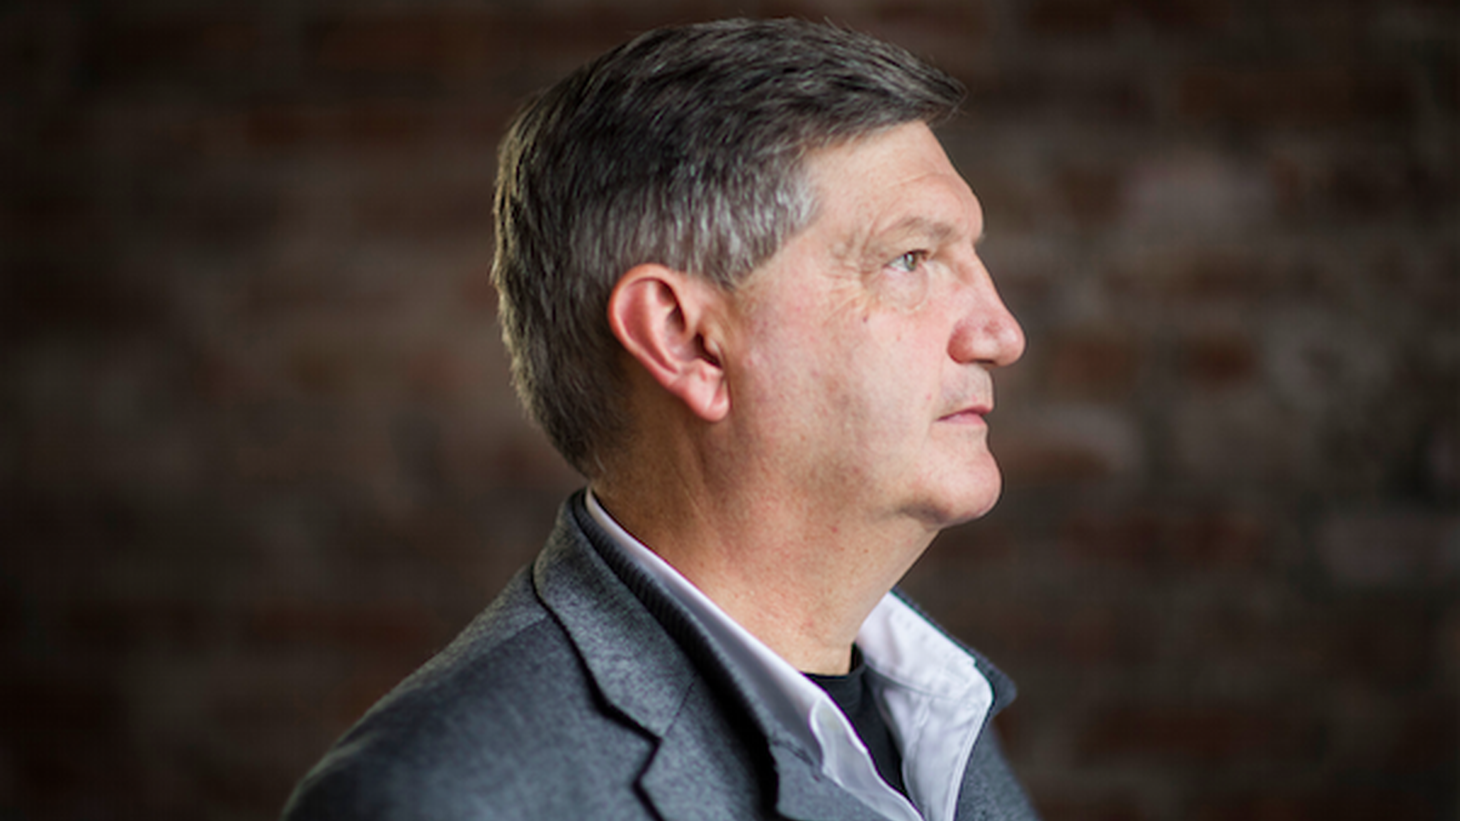 Former New York Times reporter James Risen broke the NSA wiretapping story, but his paper refused to publish it for more than a year. Editors believed Bush administration officials who said publishing the piece would damage national security.